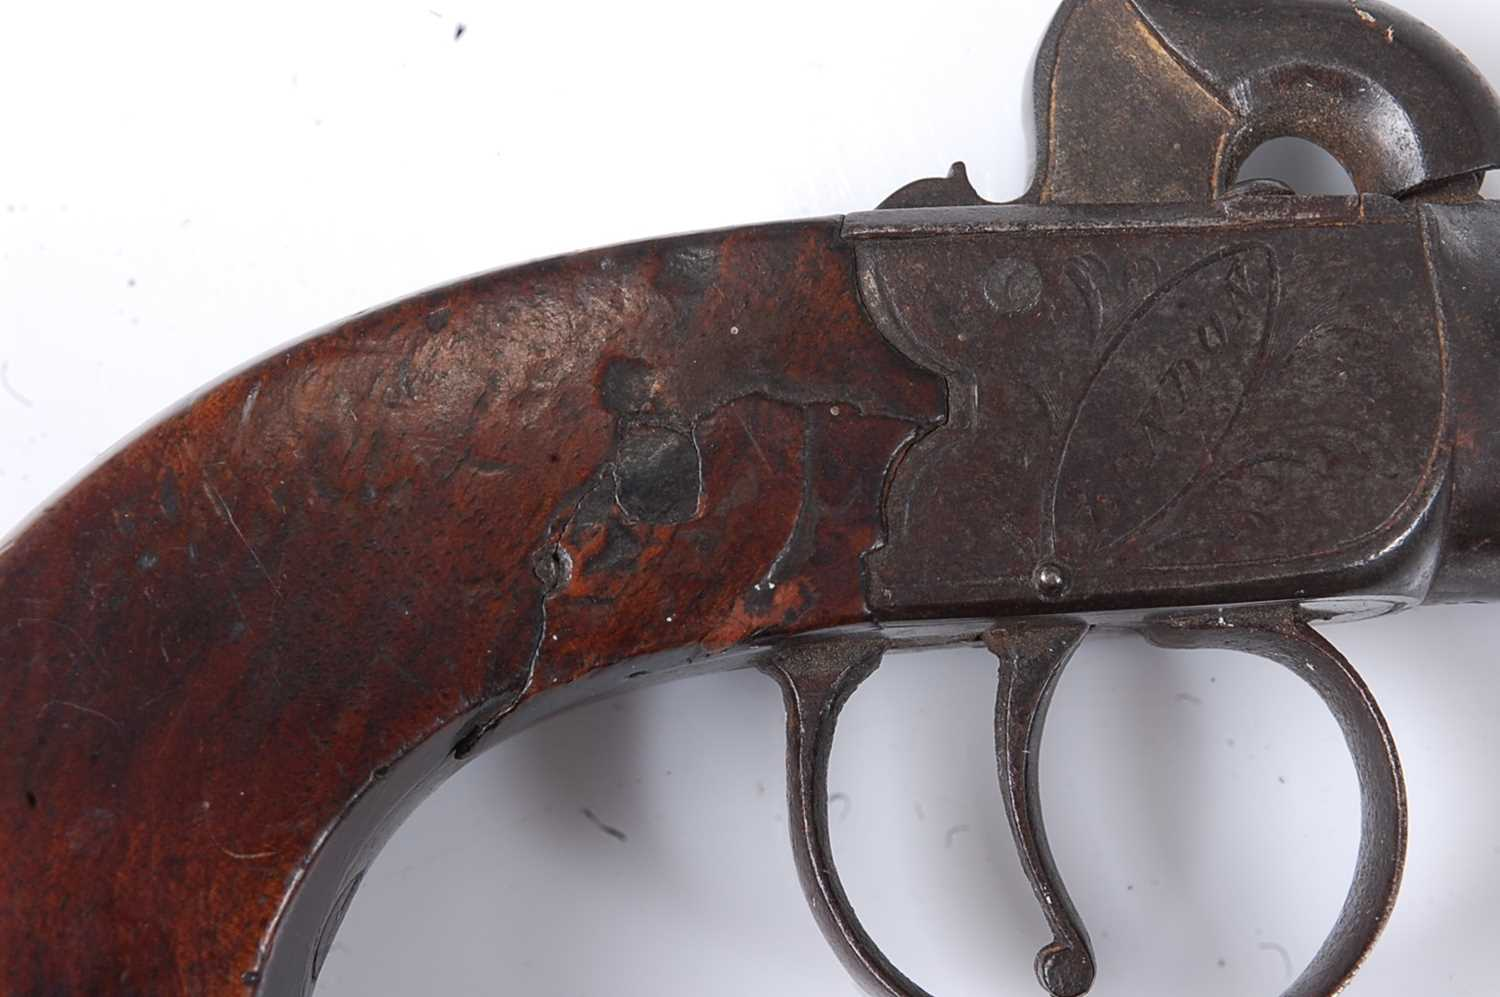 A pair of 19th century percussion box-lock pocket pistols by Durs Egg, each having a 4.5cm turn- - Image 5 of 7